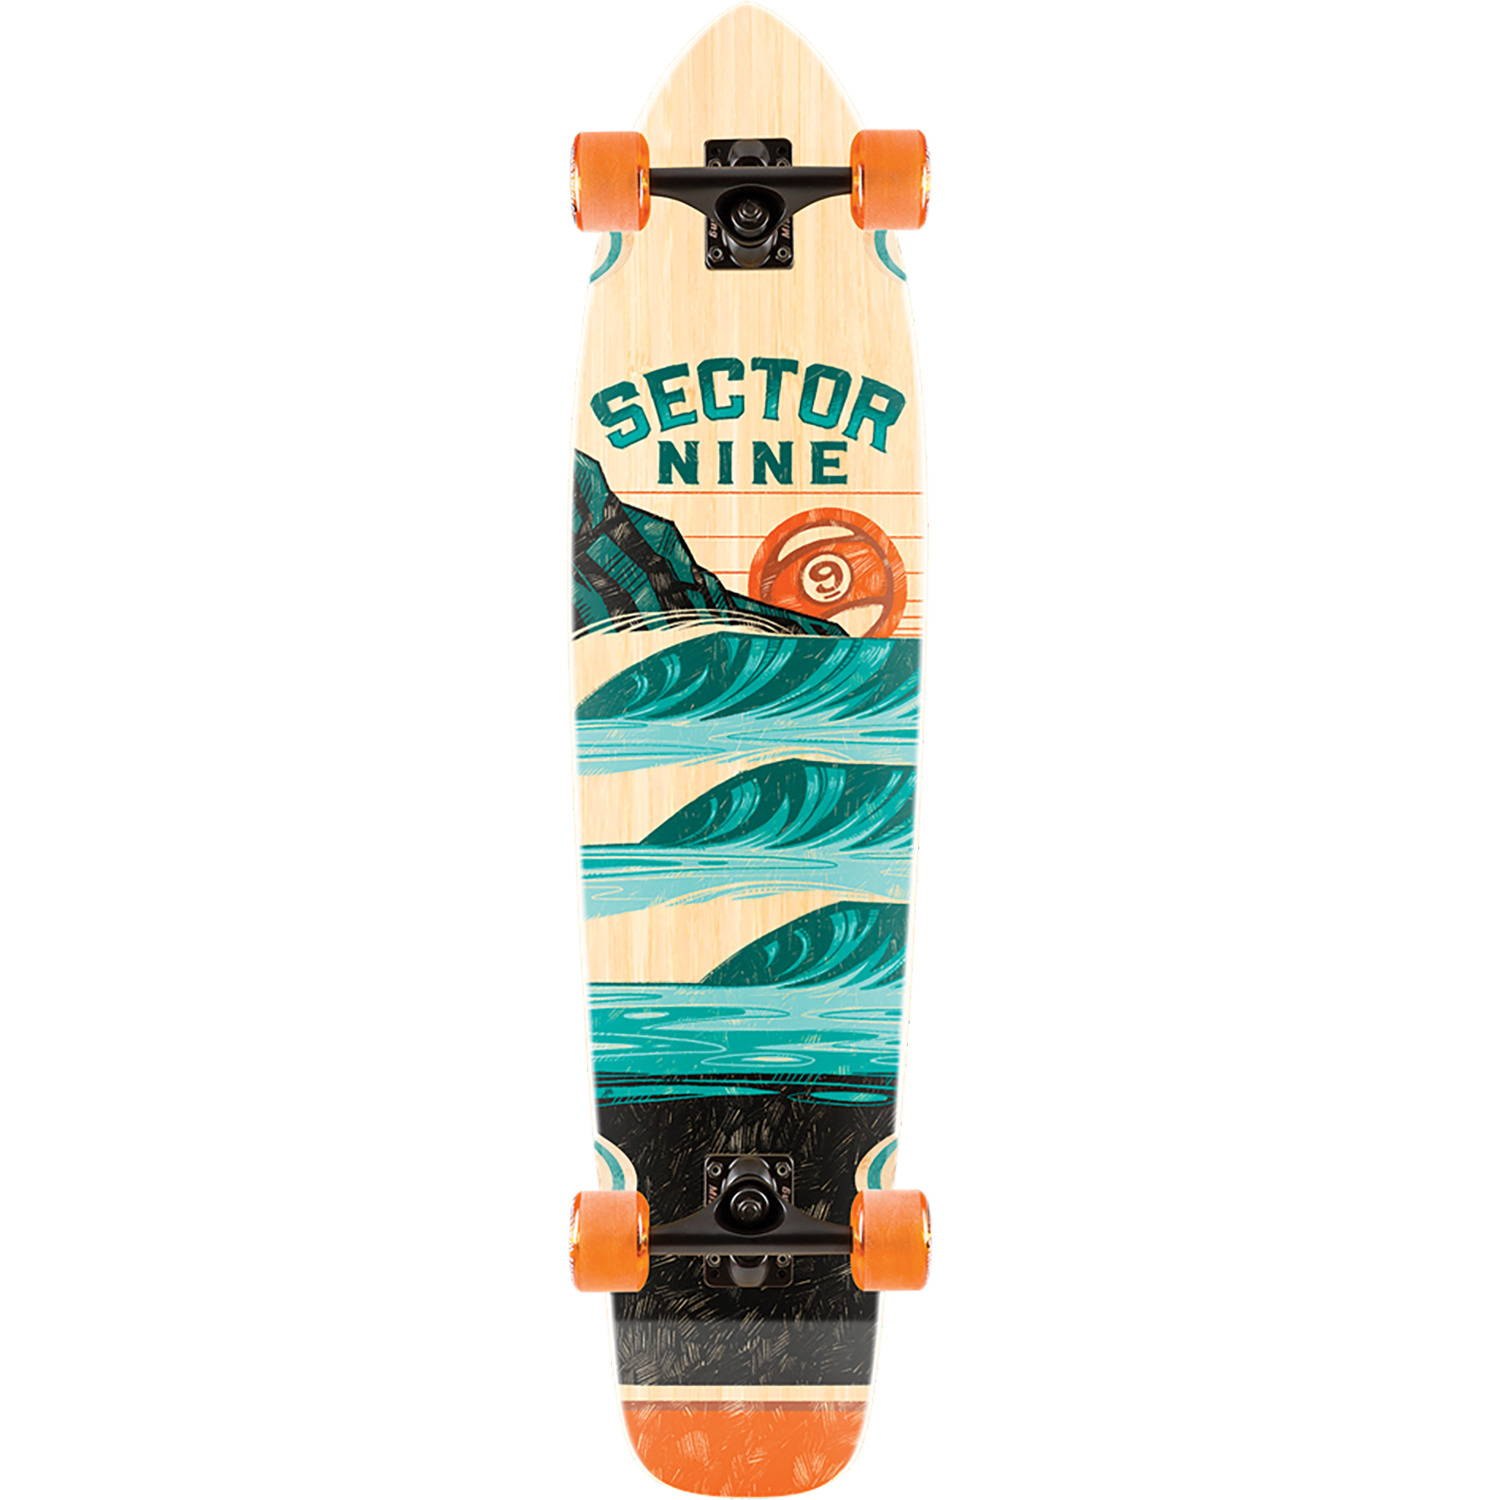 Sector Nine Cruiser Longboard